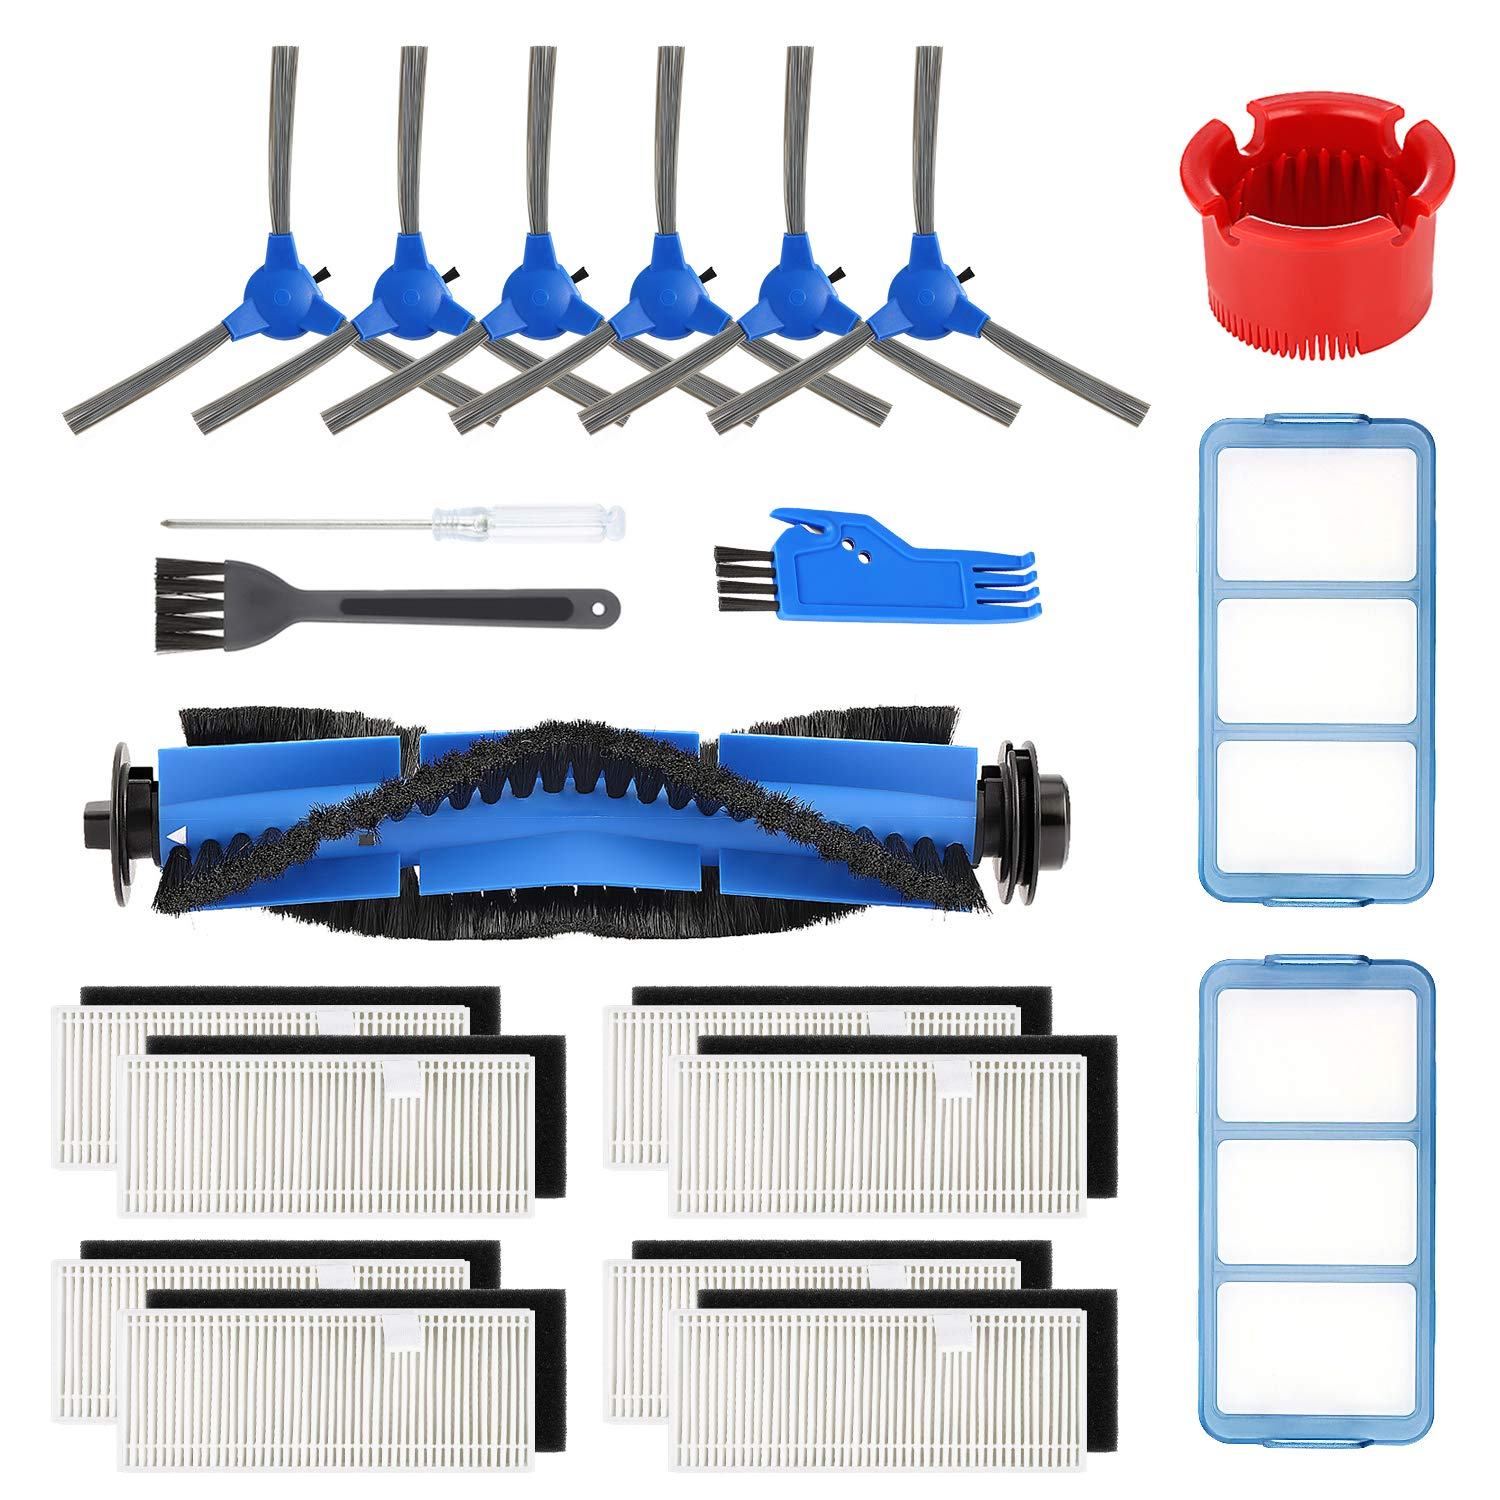 isinlive Accessory Kit for eufy RoboVac 11S RoboVac 30 RoboVac 30C RoboVac 15C RoboVac 12 RoboVac 35C Replacement Parts, 17 Pack (8 Filters + 6 Side Brushes + 2 Primary Filters + 1 Rolling Brush) by isinlive